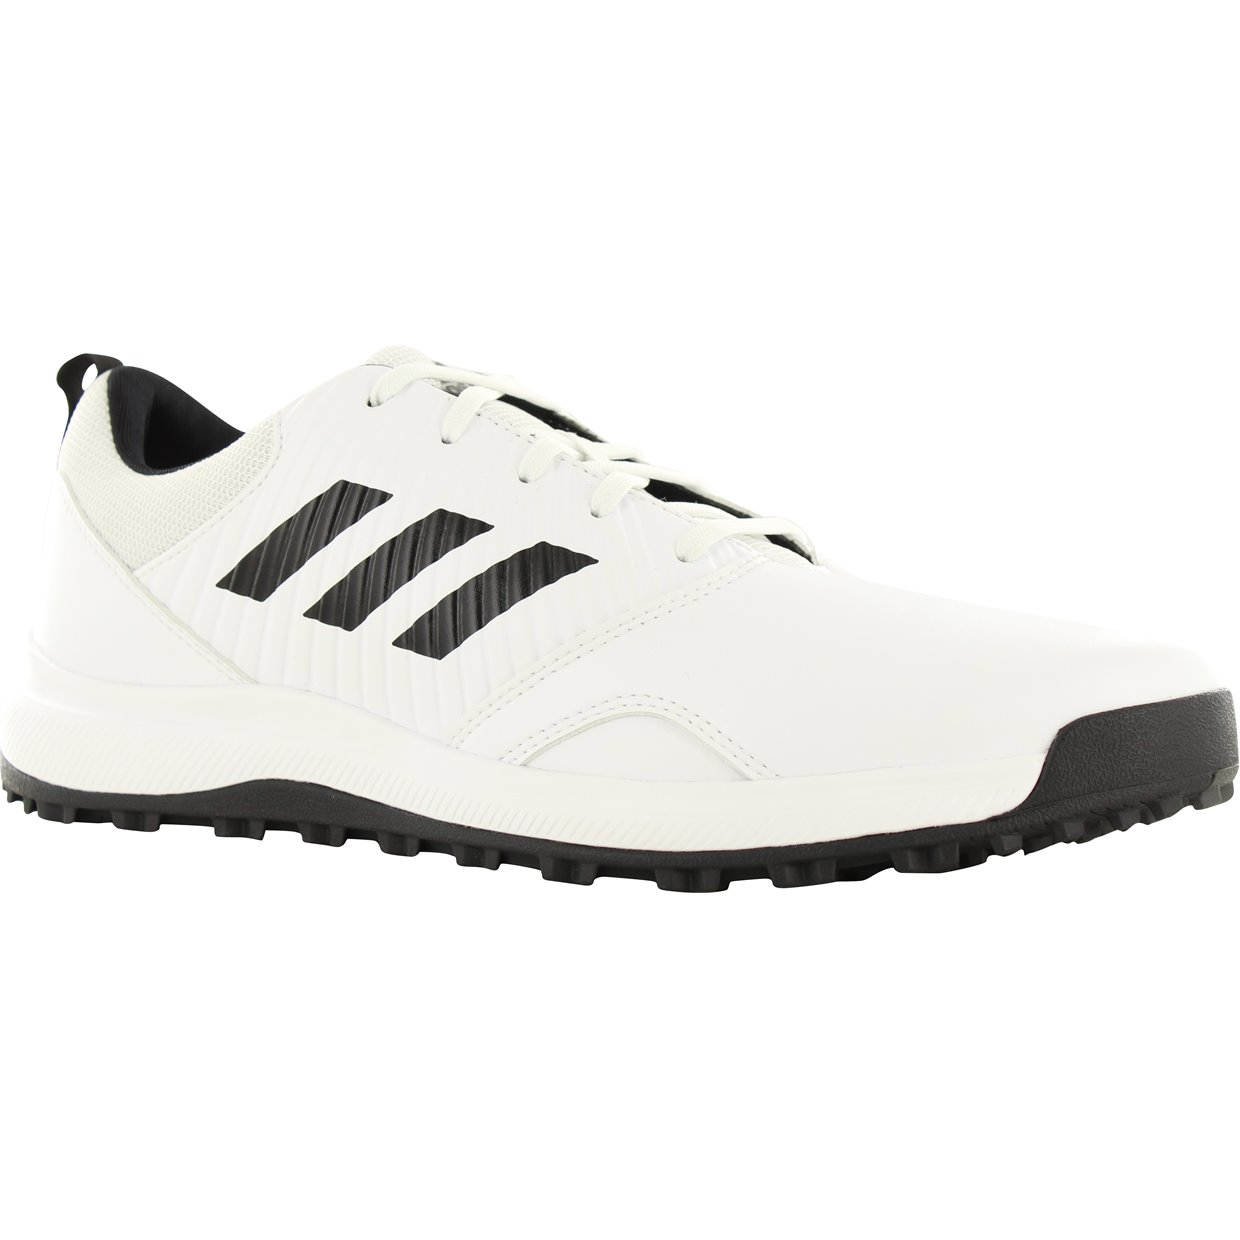 sports shoes 1e22d 094ca Adidas CP Traxion SL Spikeless Shoes